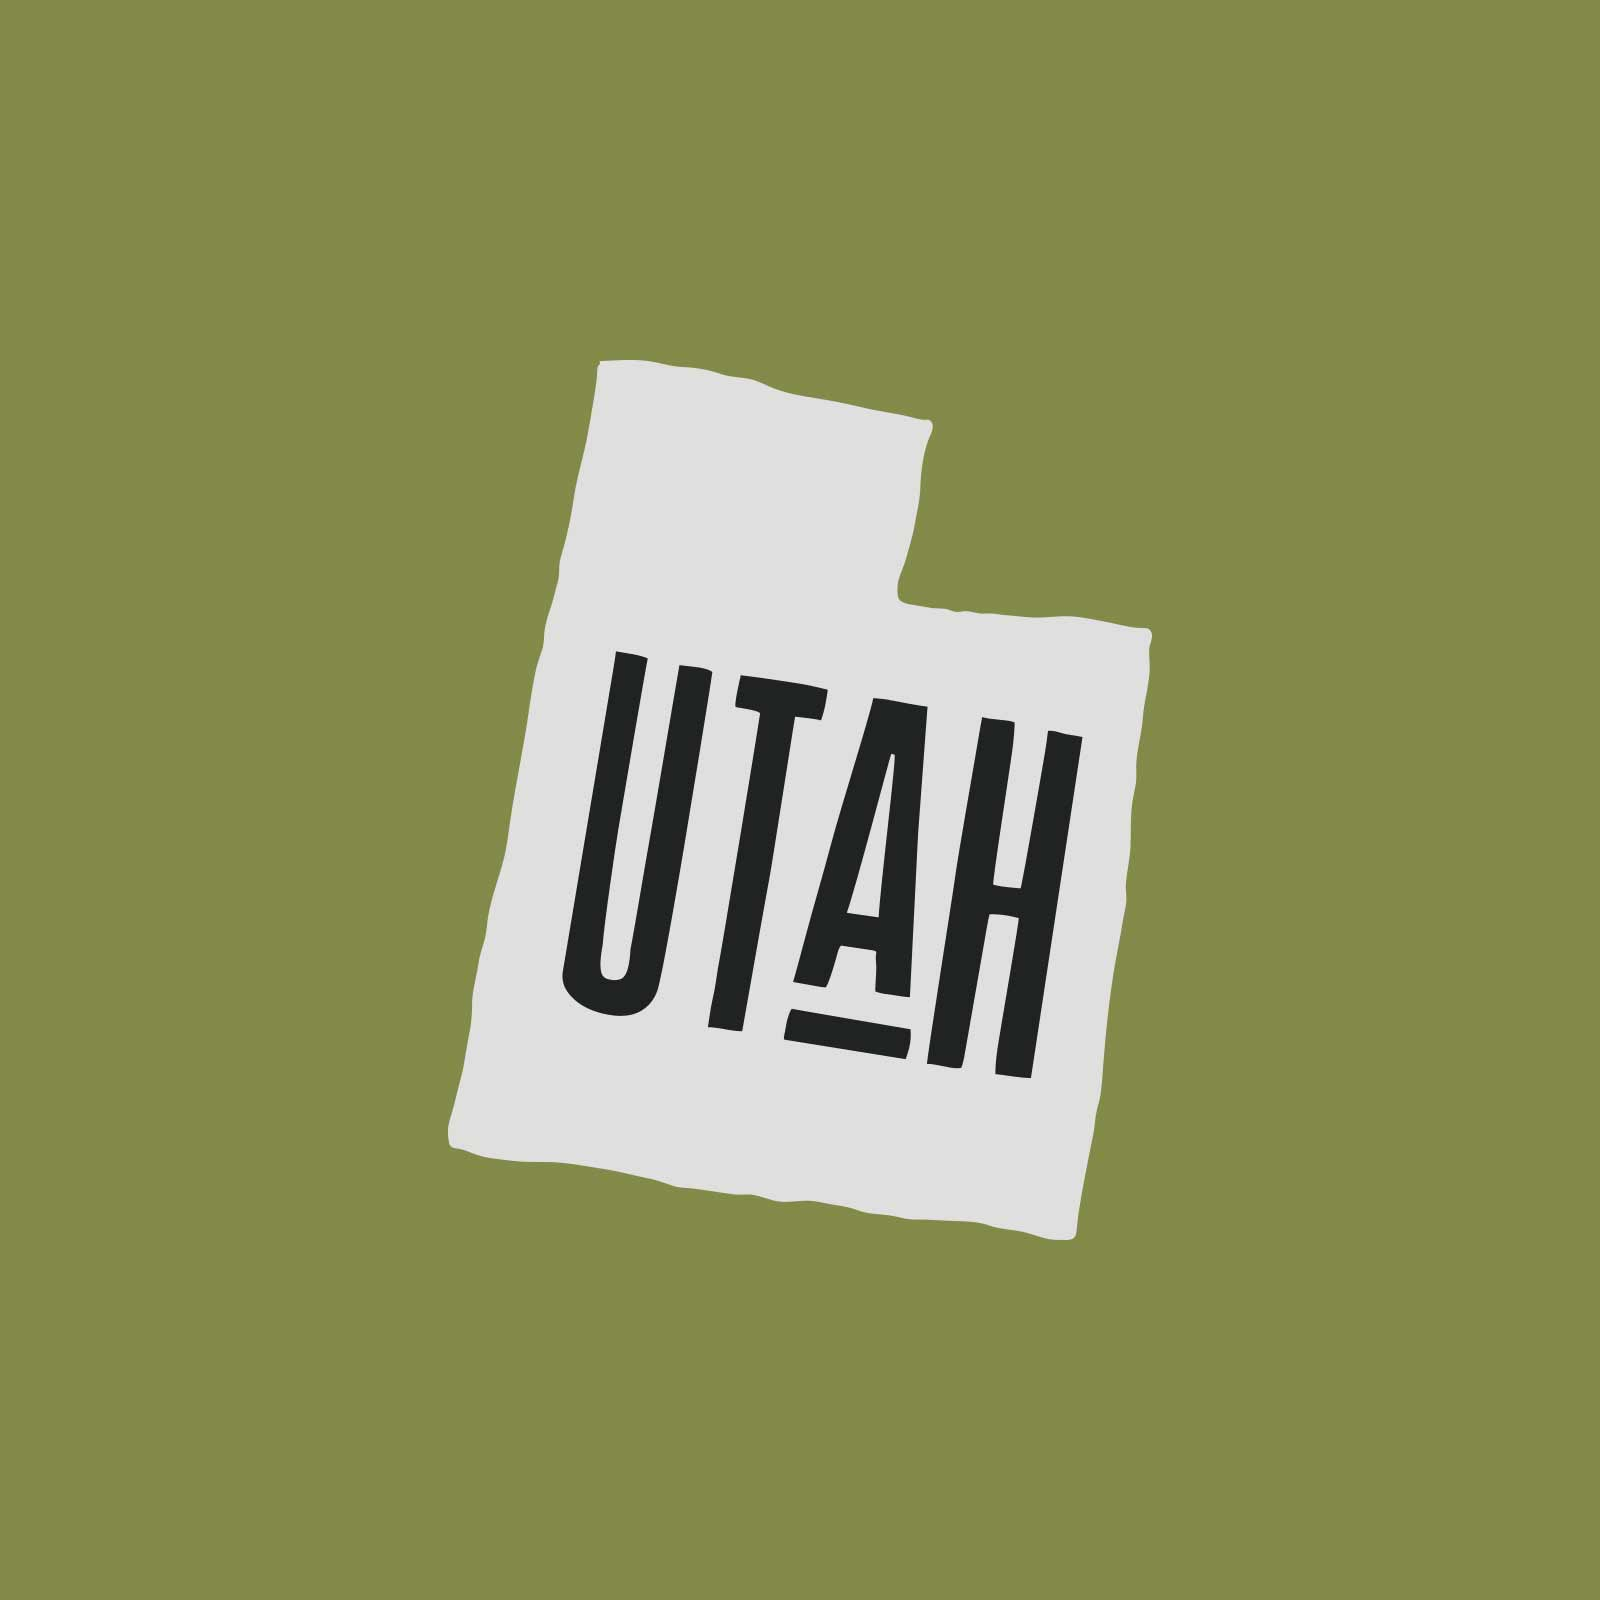 How to start a business in Utah